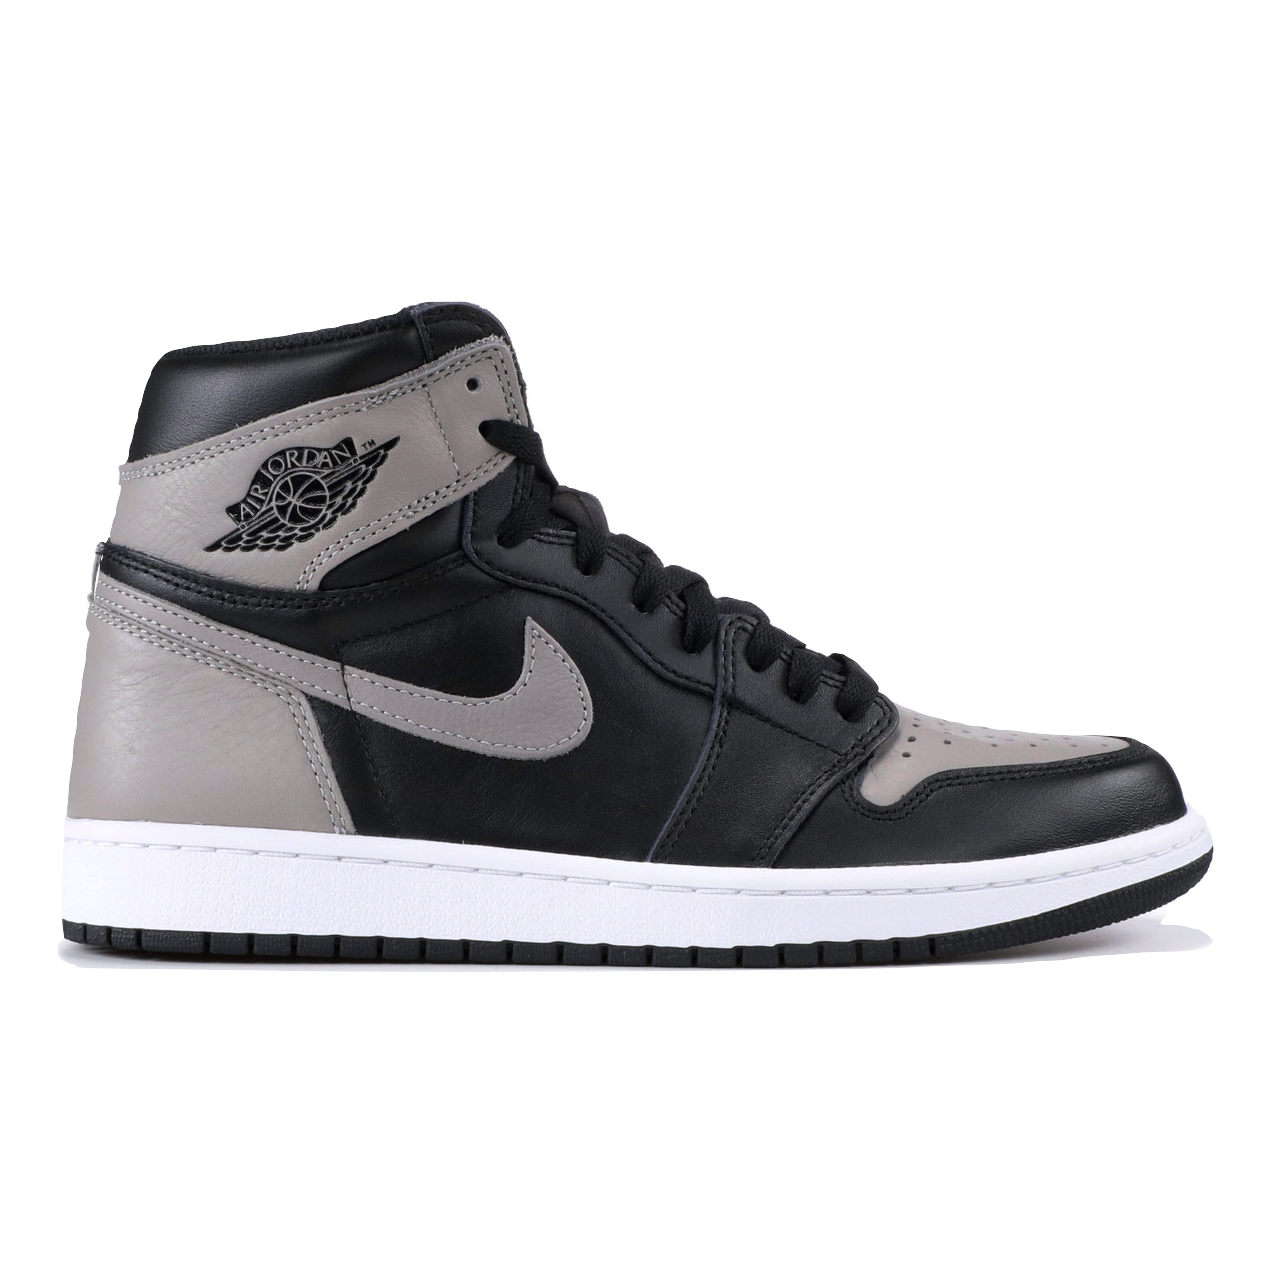 Air Jordan 1 Retro High OG - Shadow 2018